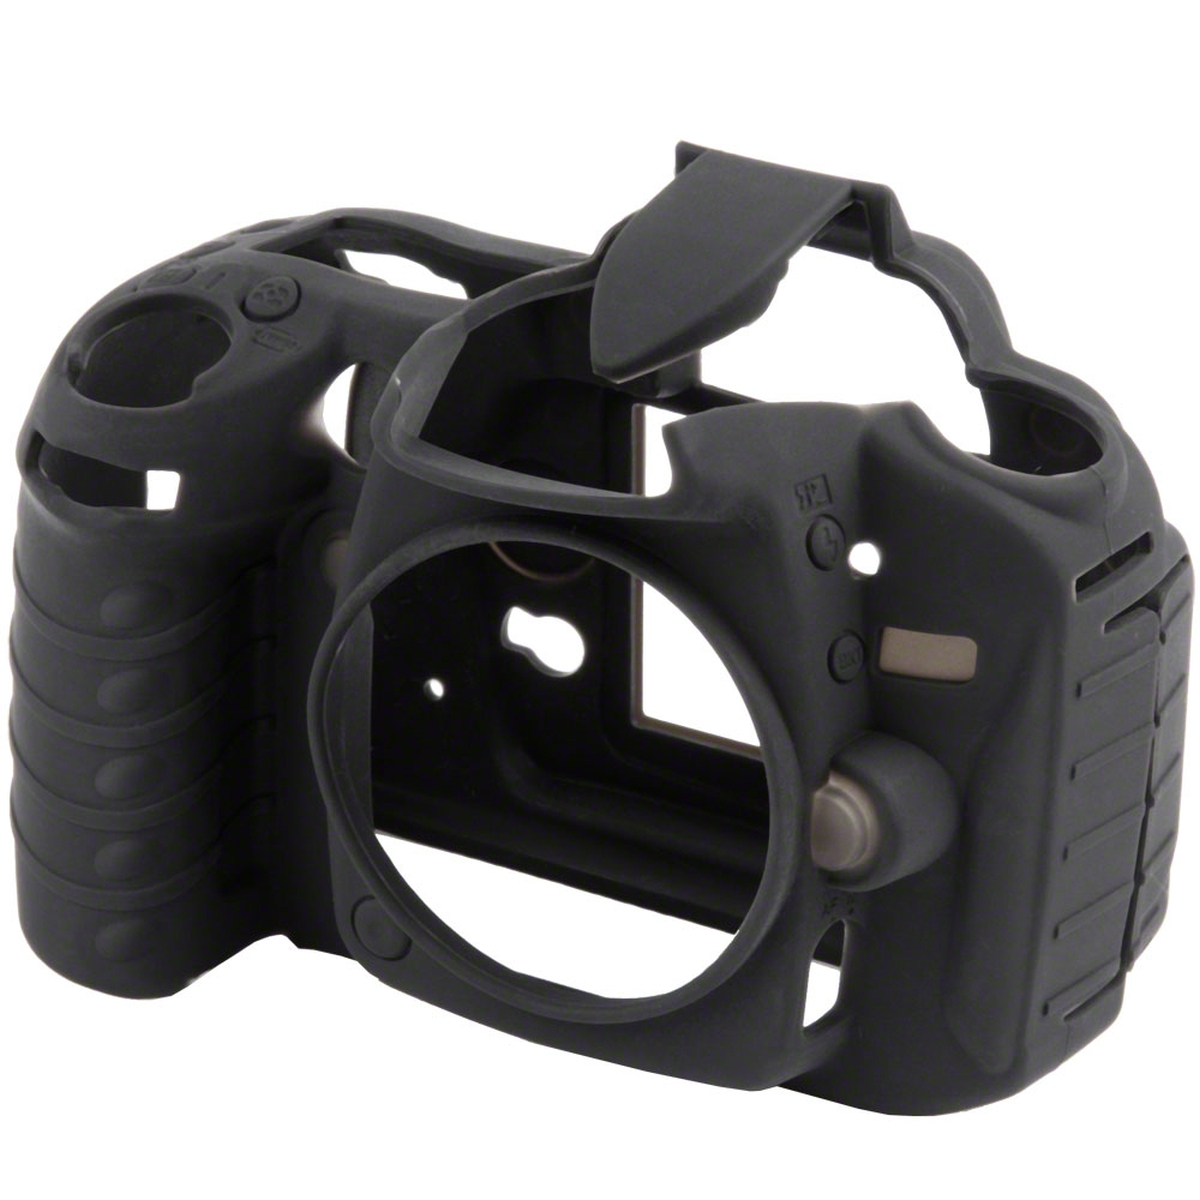 Walimex pro easyCover for Nikon D90